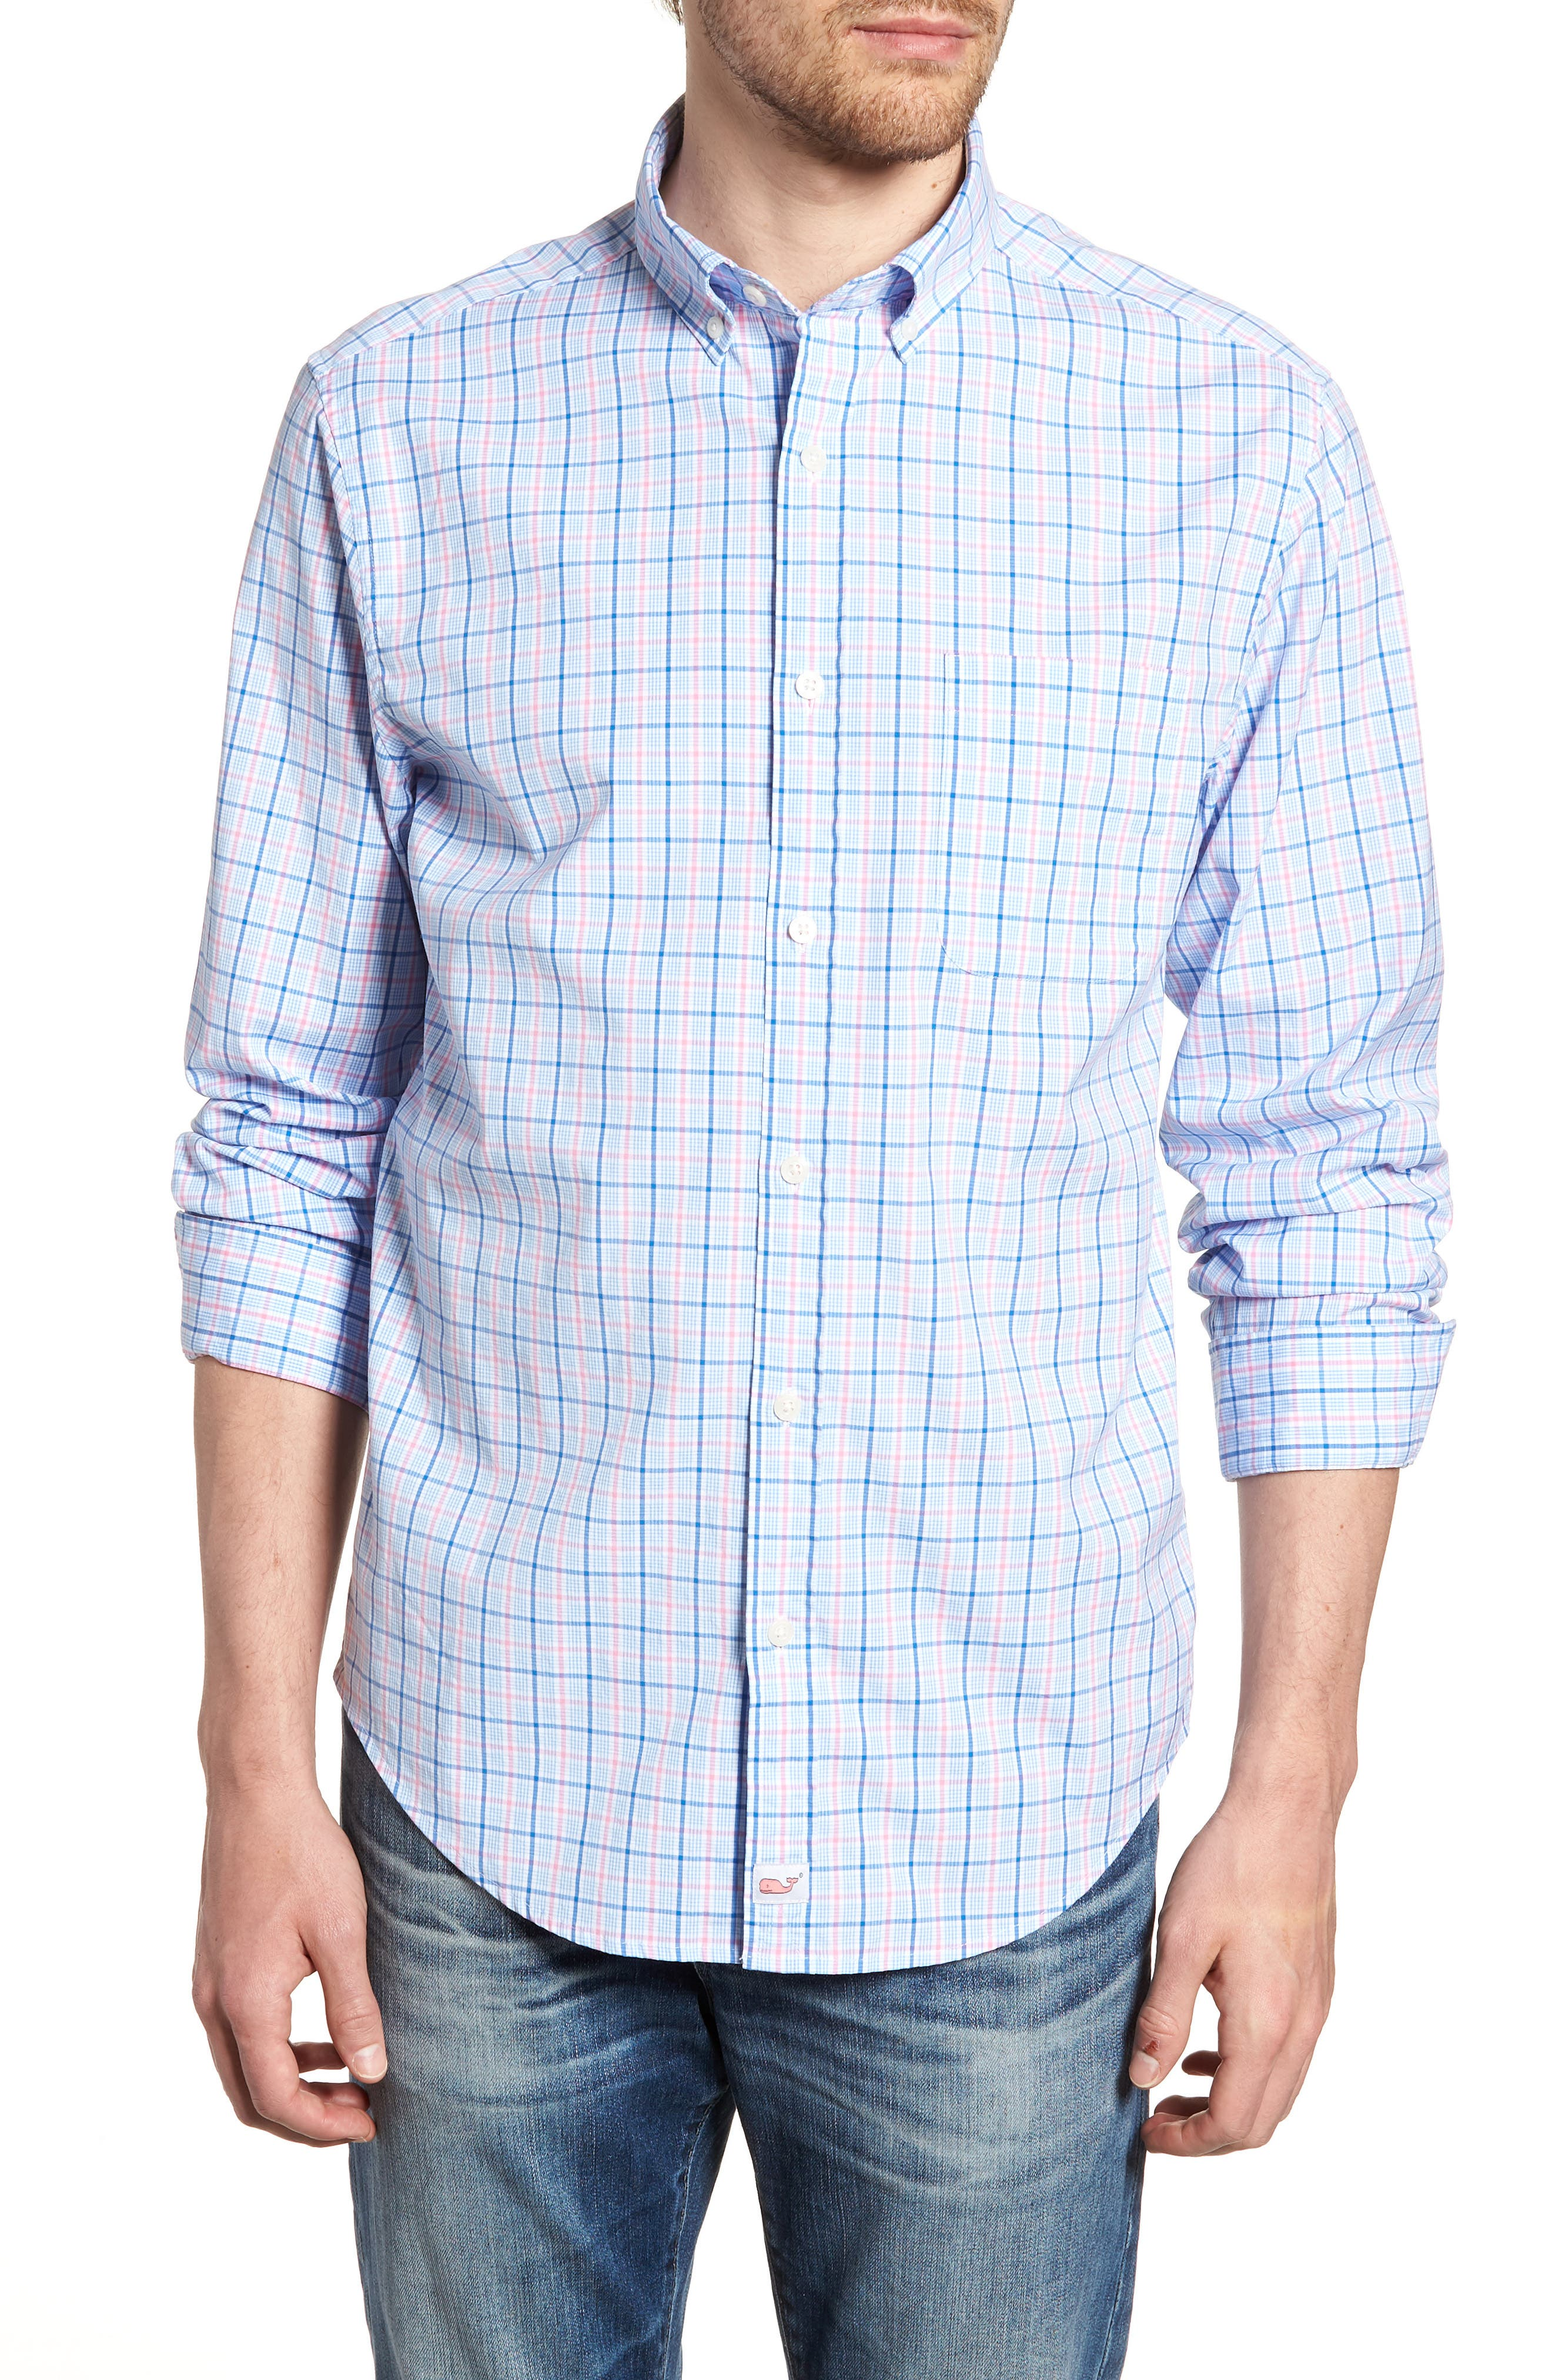 Sir Christie Classic Fit Check Sport Shirt,                         Main,                         color, 427